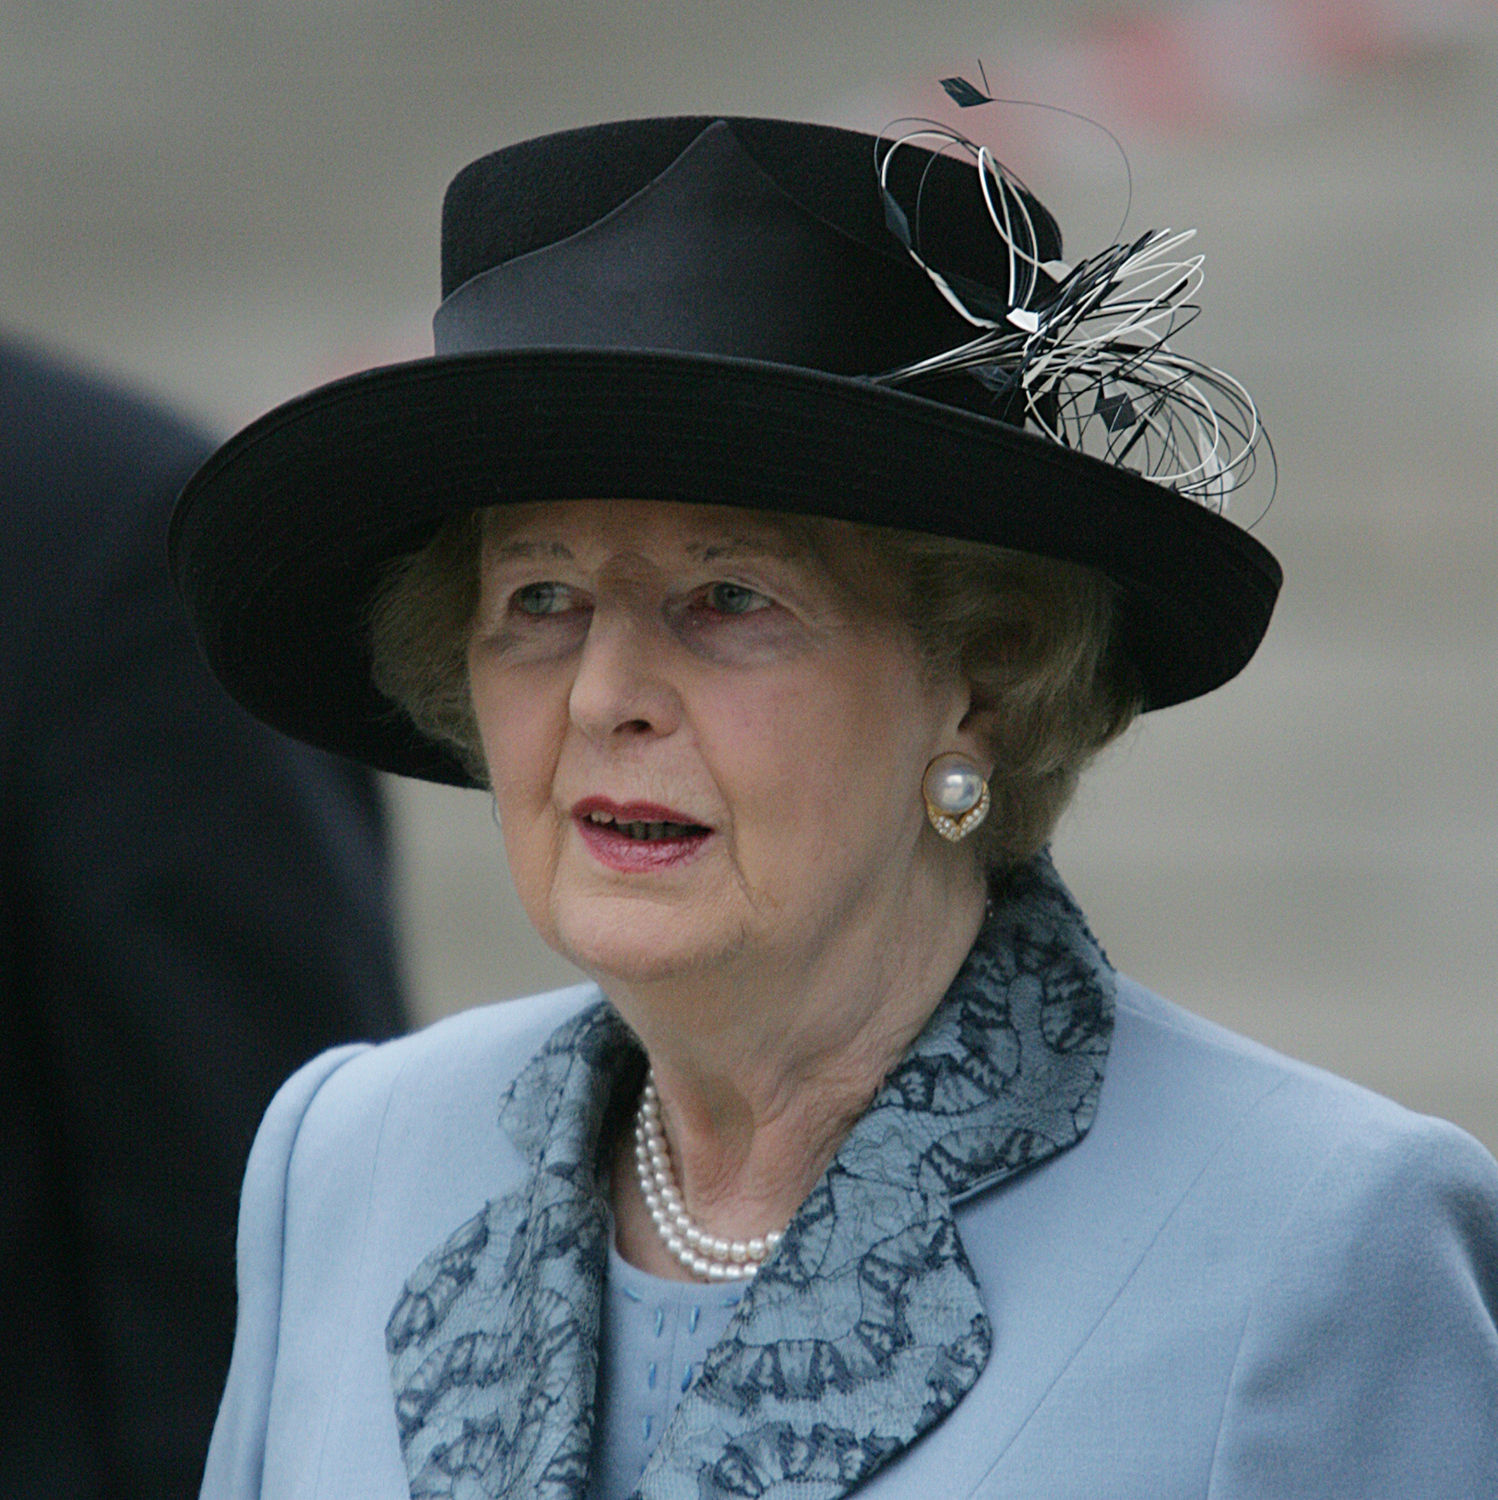 BARONESS THATCHER ATTENDS THE OPENING OF THE CHURCHILL MUSEUM